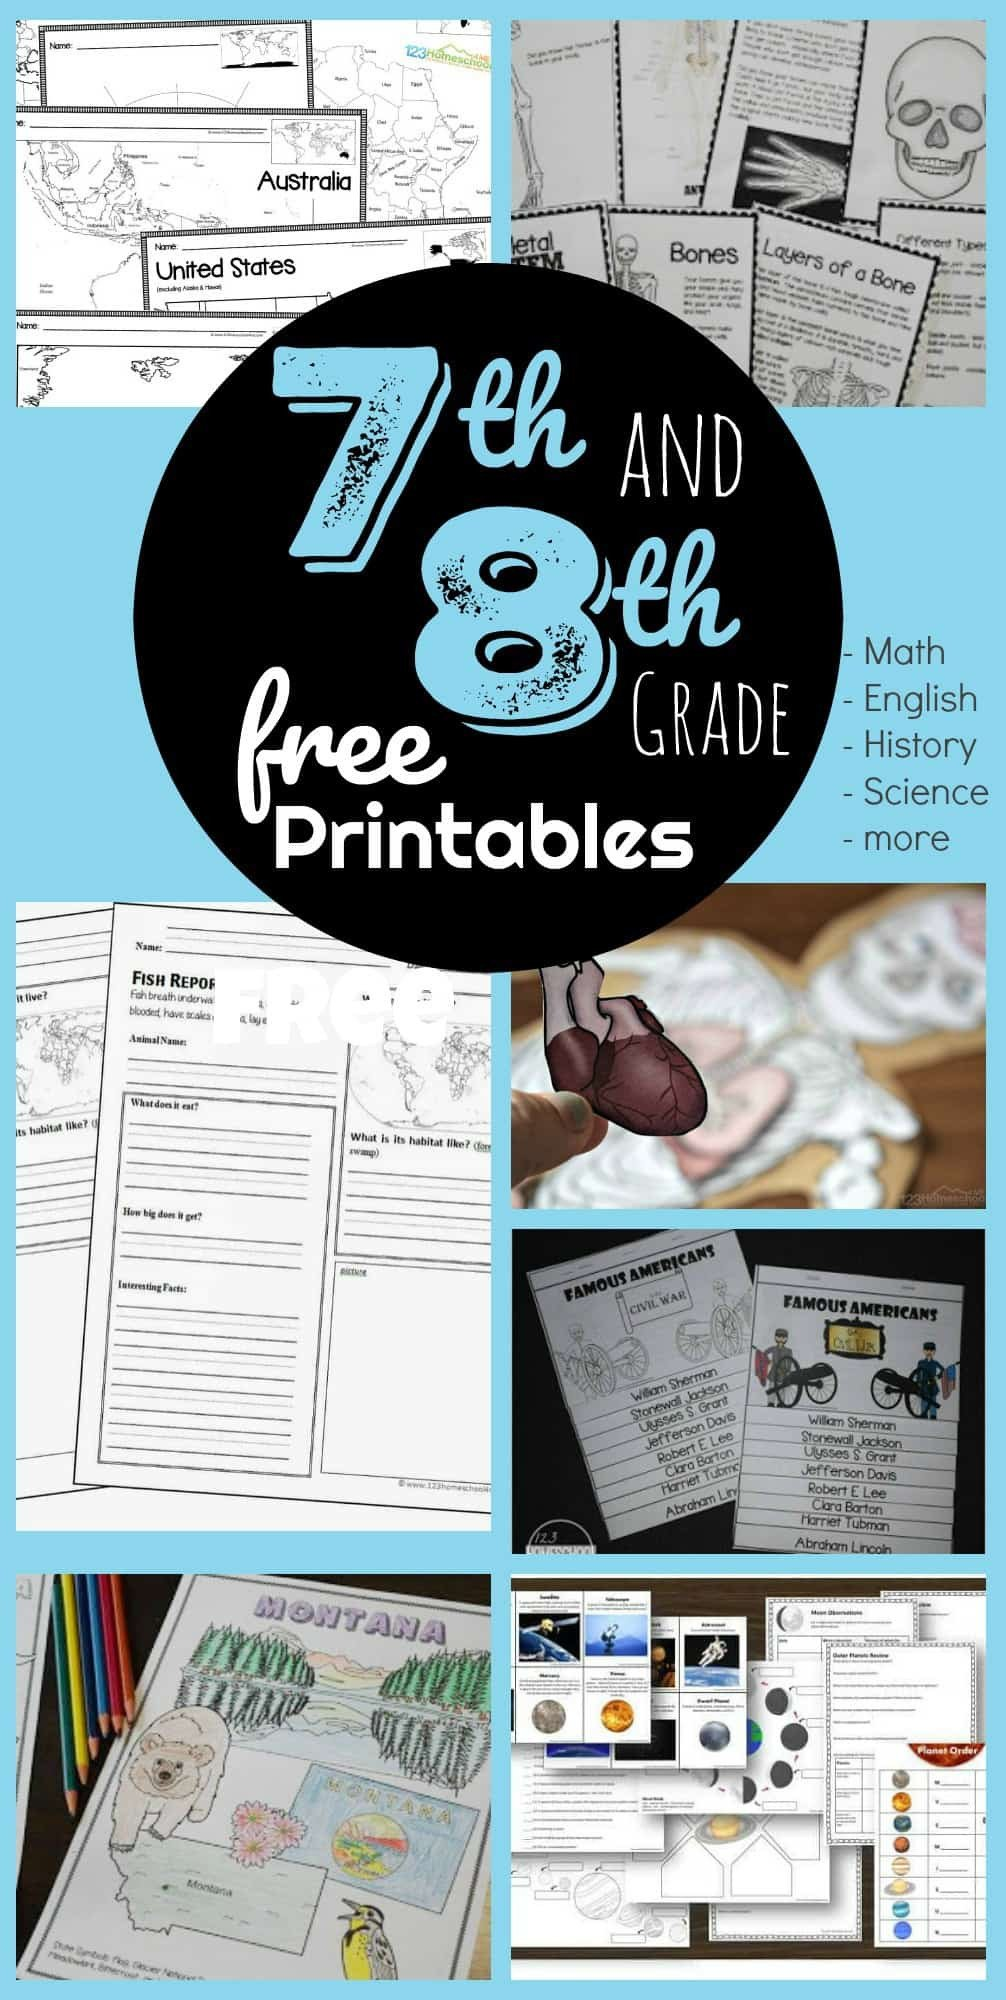 7th Grade Geography Worksheets Free 7th & 8th Grade Worksheets